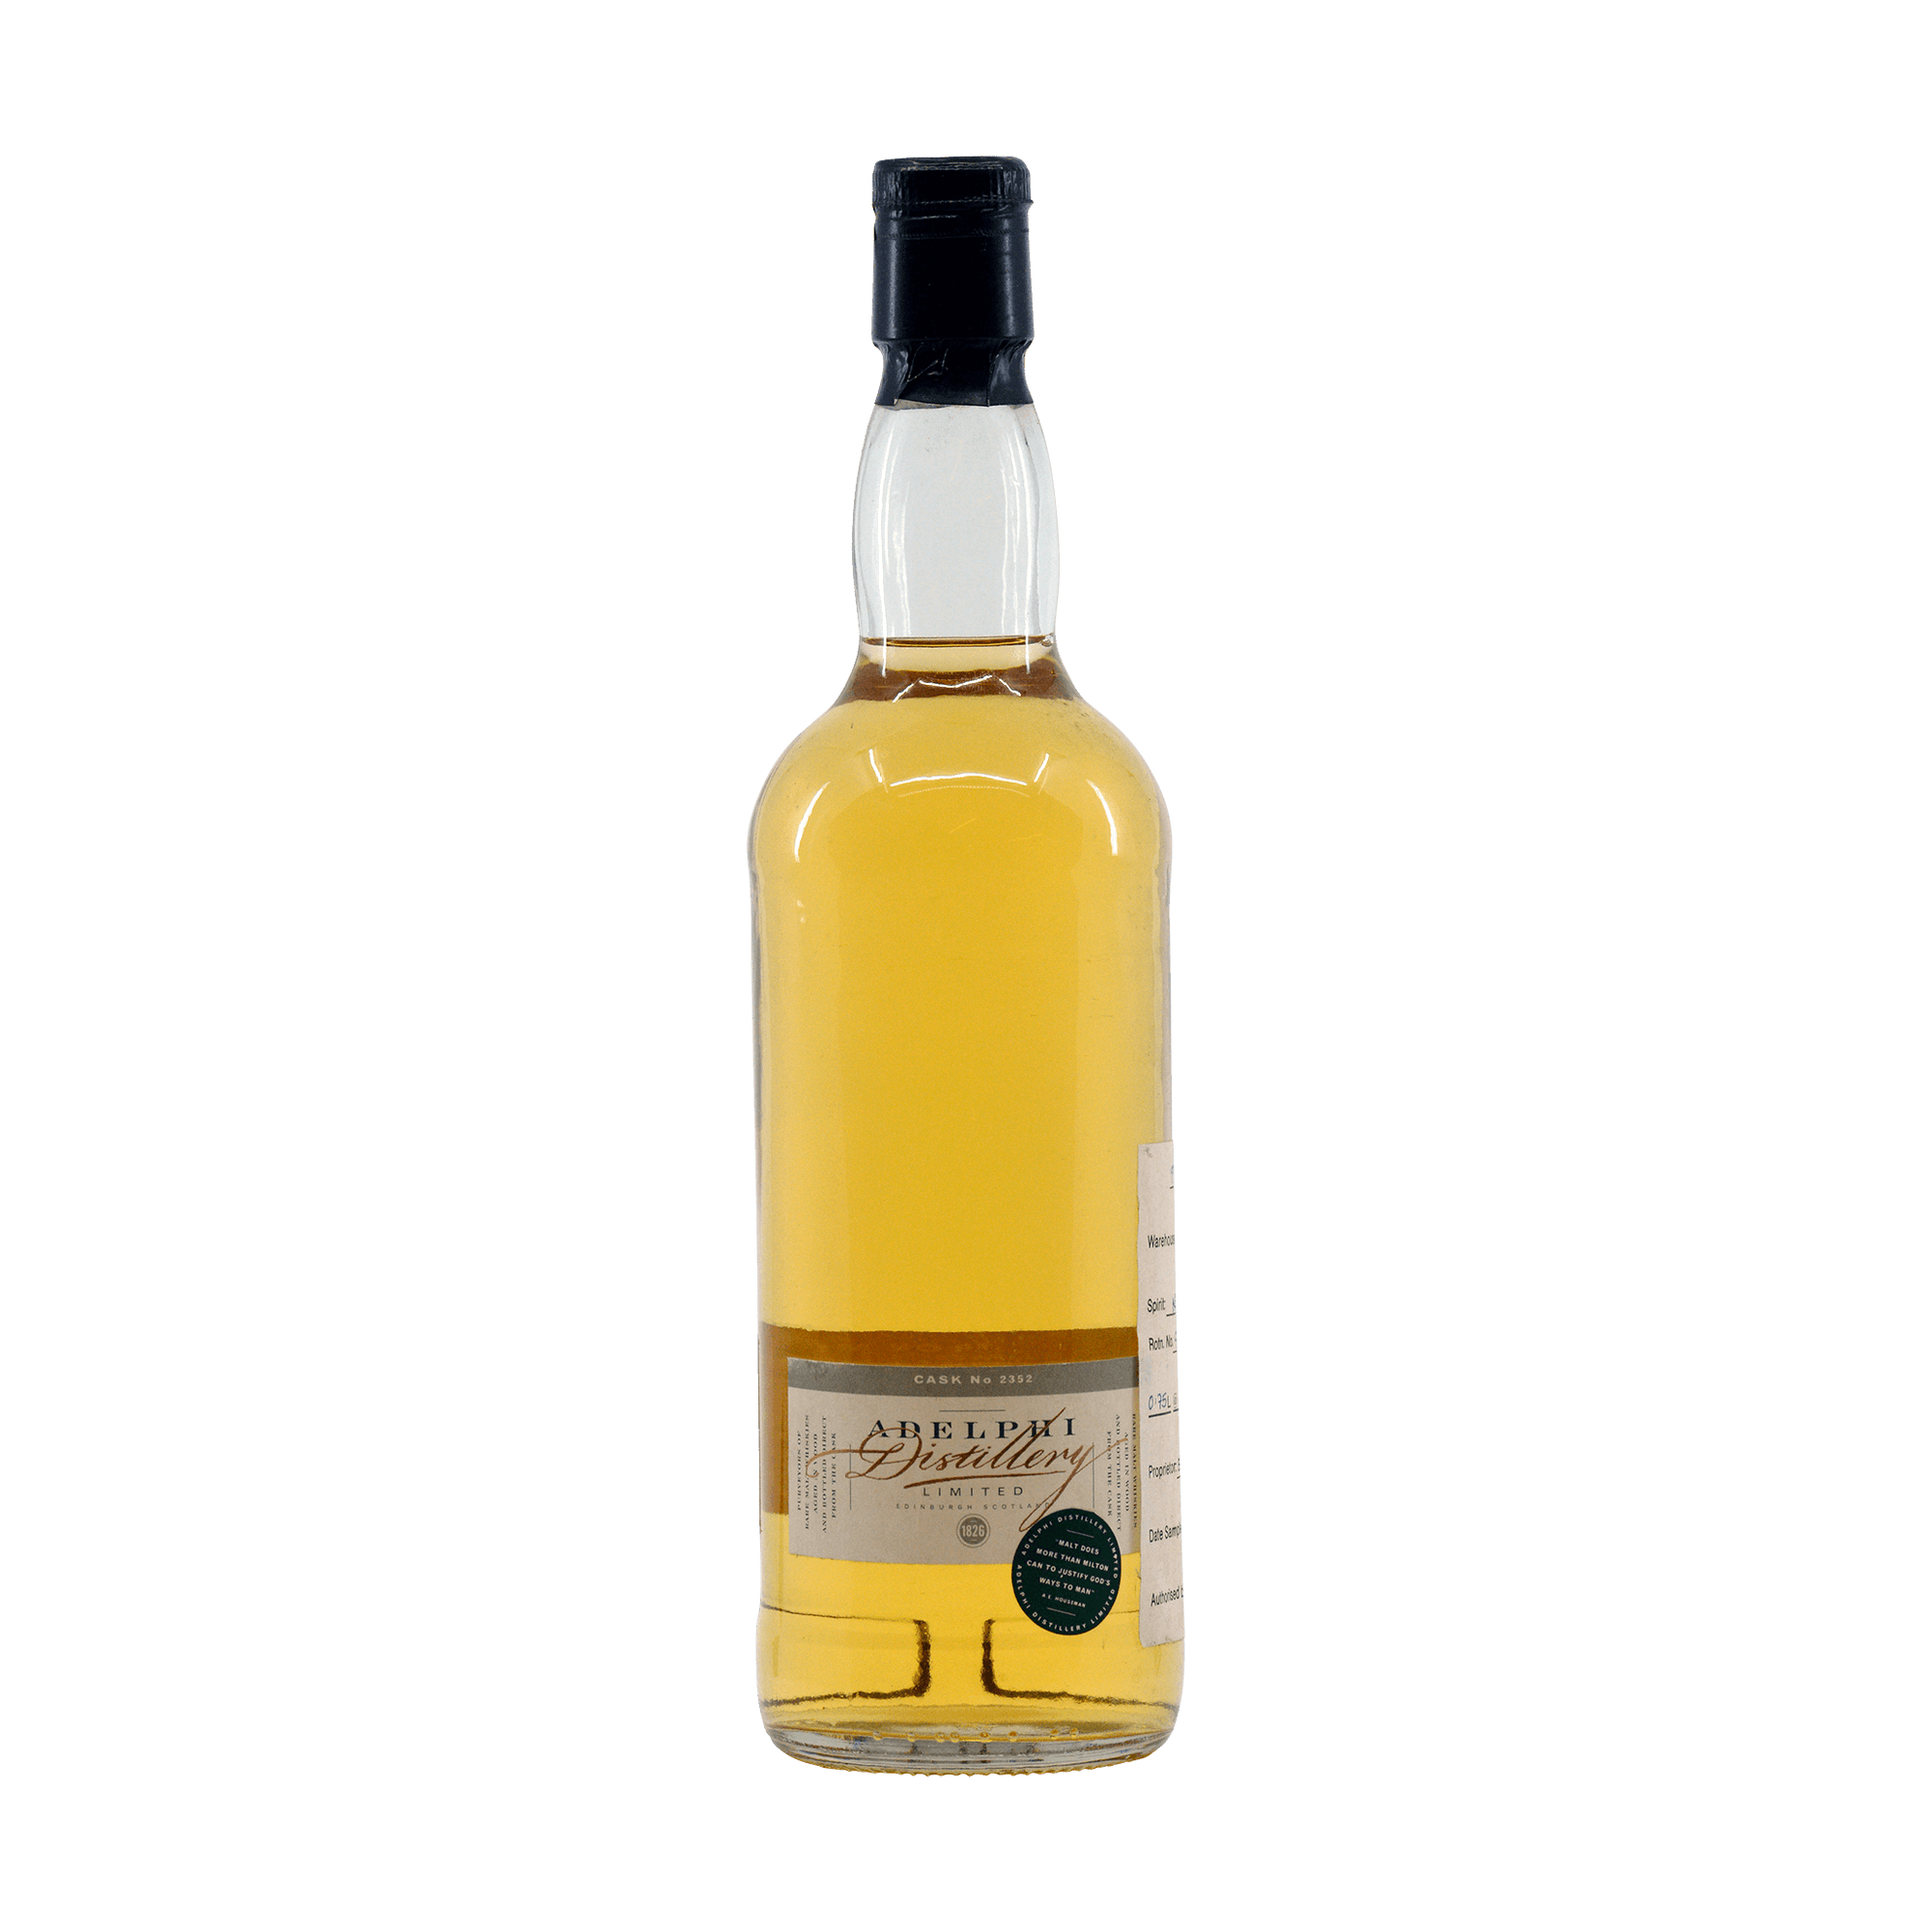 Macallan 1985 12 Year Old Adelphi 54.90%